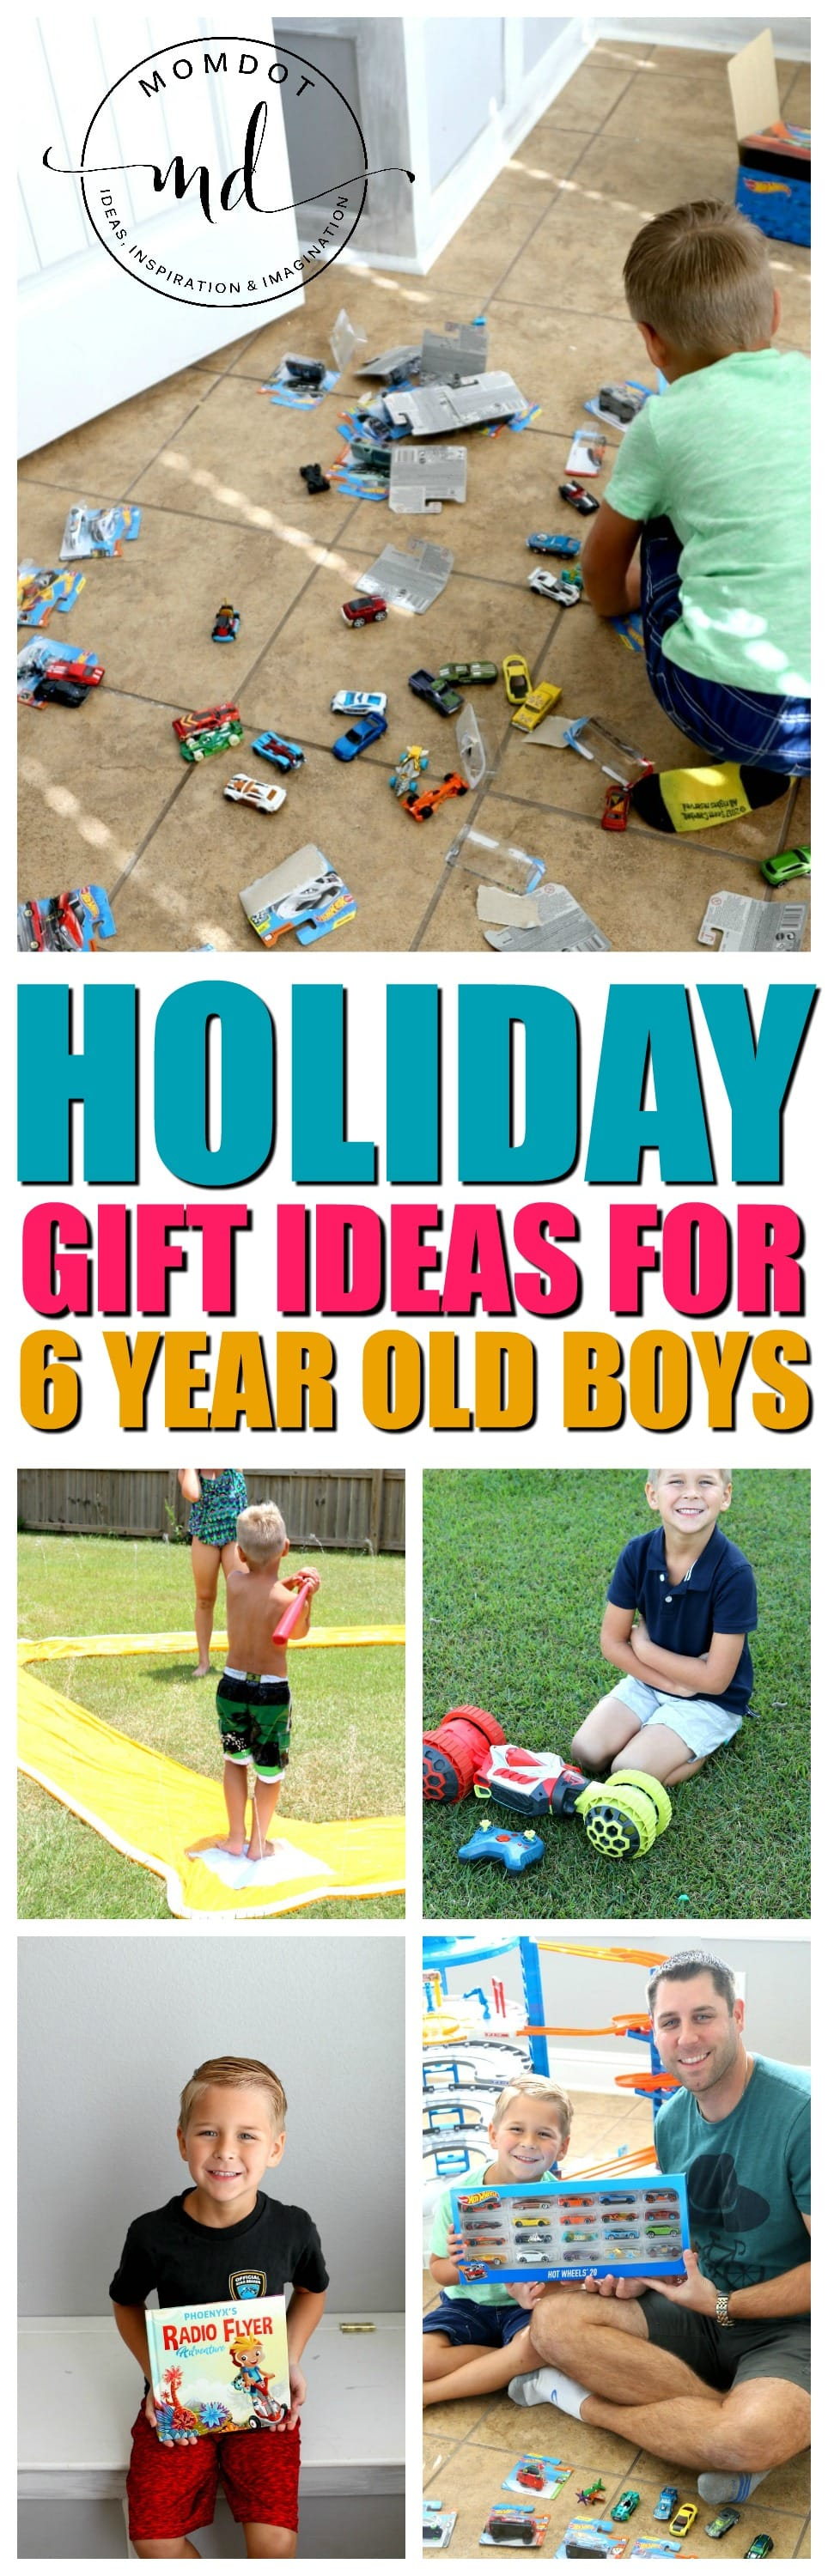 Gift Ideas for 6 year old boys from creative play, to super heros, minecraft and more, finding the right toy in an age of technology can be challenging